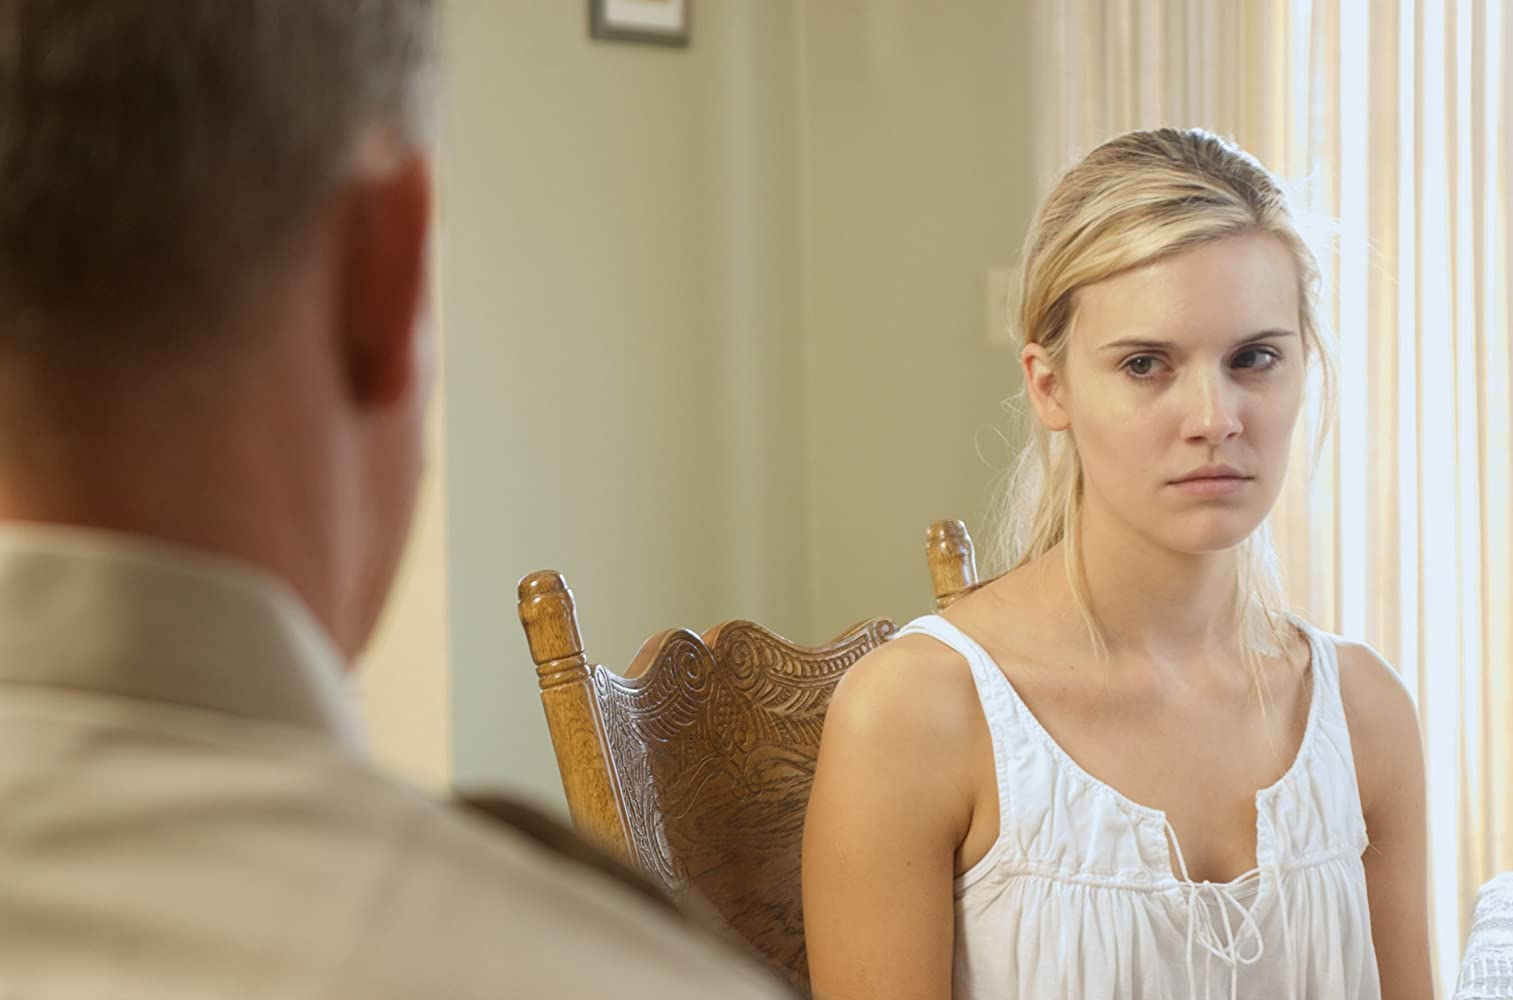 Forum on this topic: Mary Louise Weller, maggie-grace/